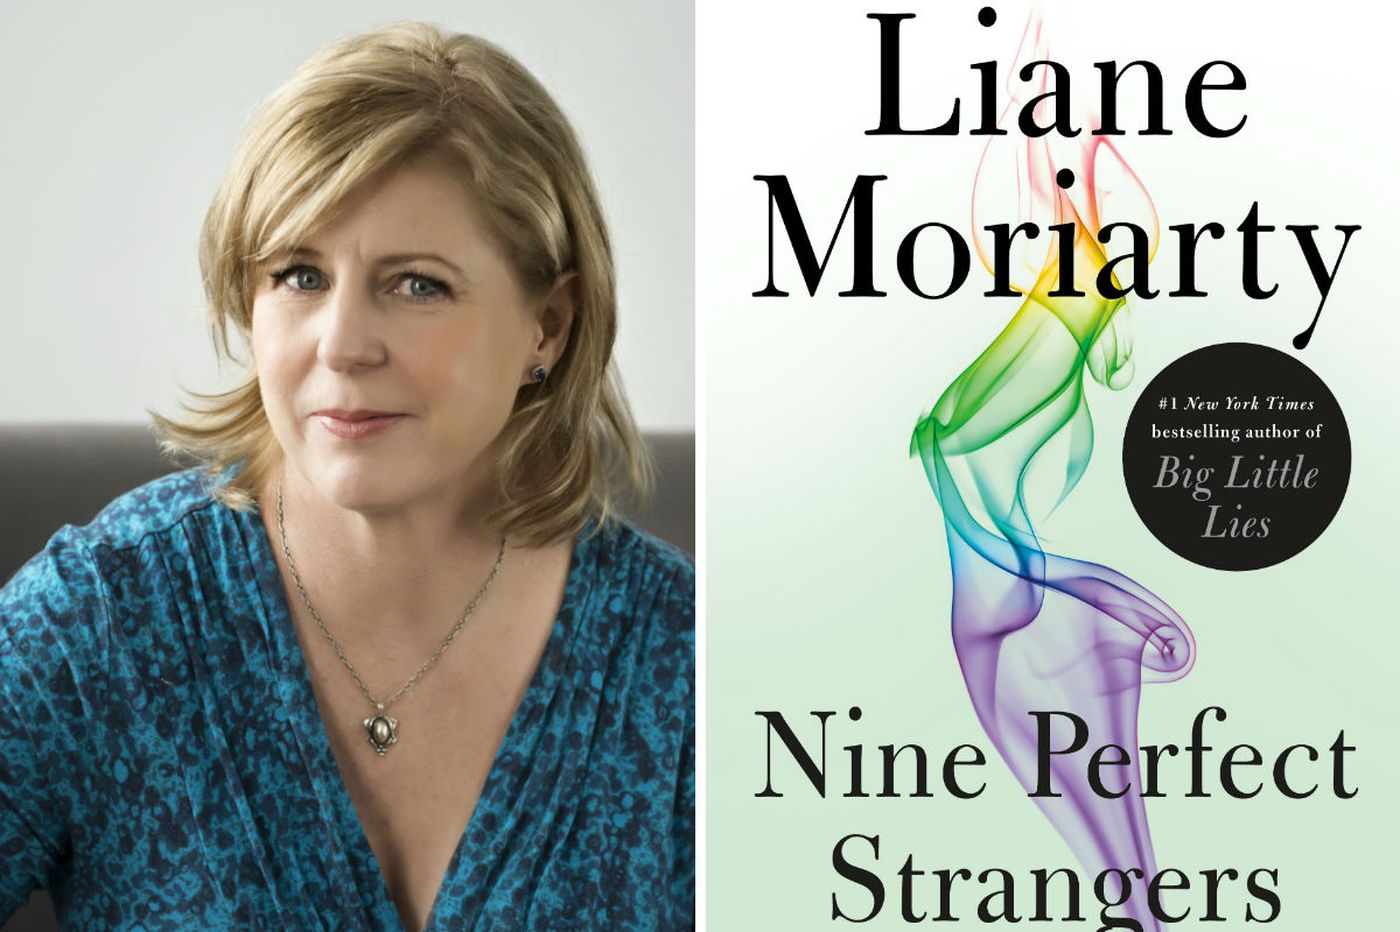 Liane Moriarty returns with another engrossing star-maker, 'Nine Perfect Strangers'